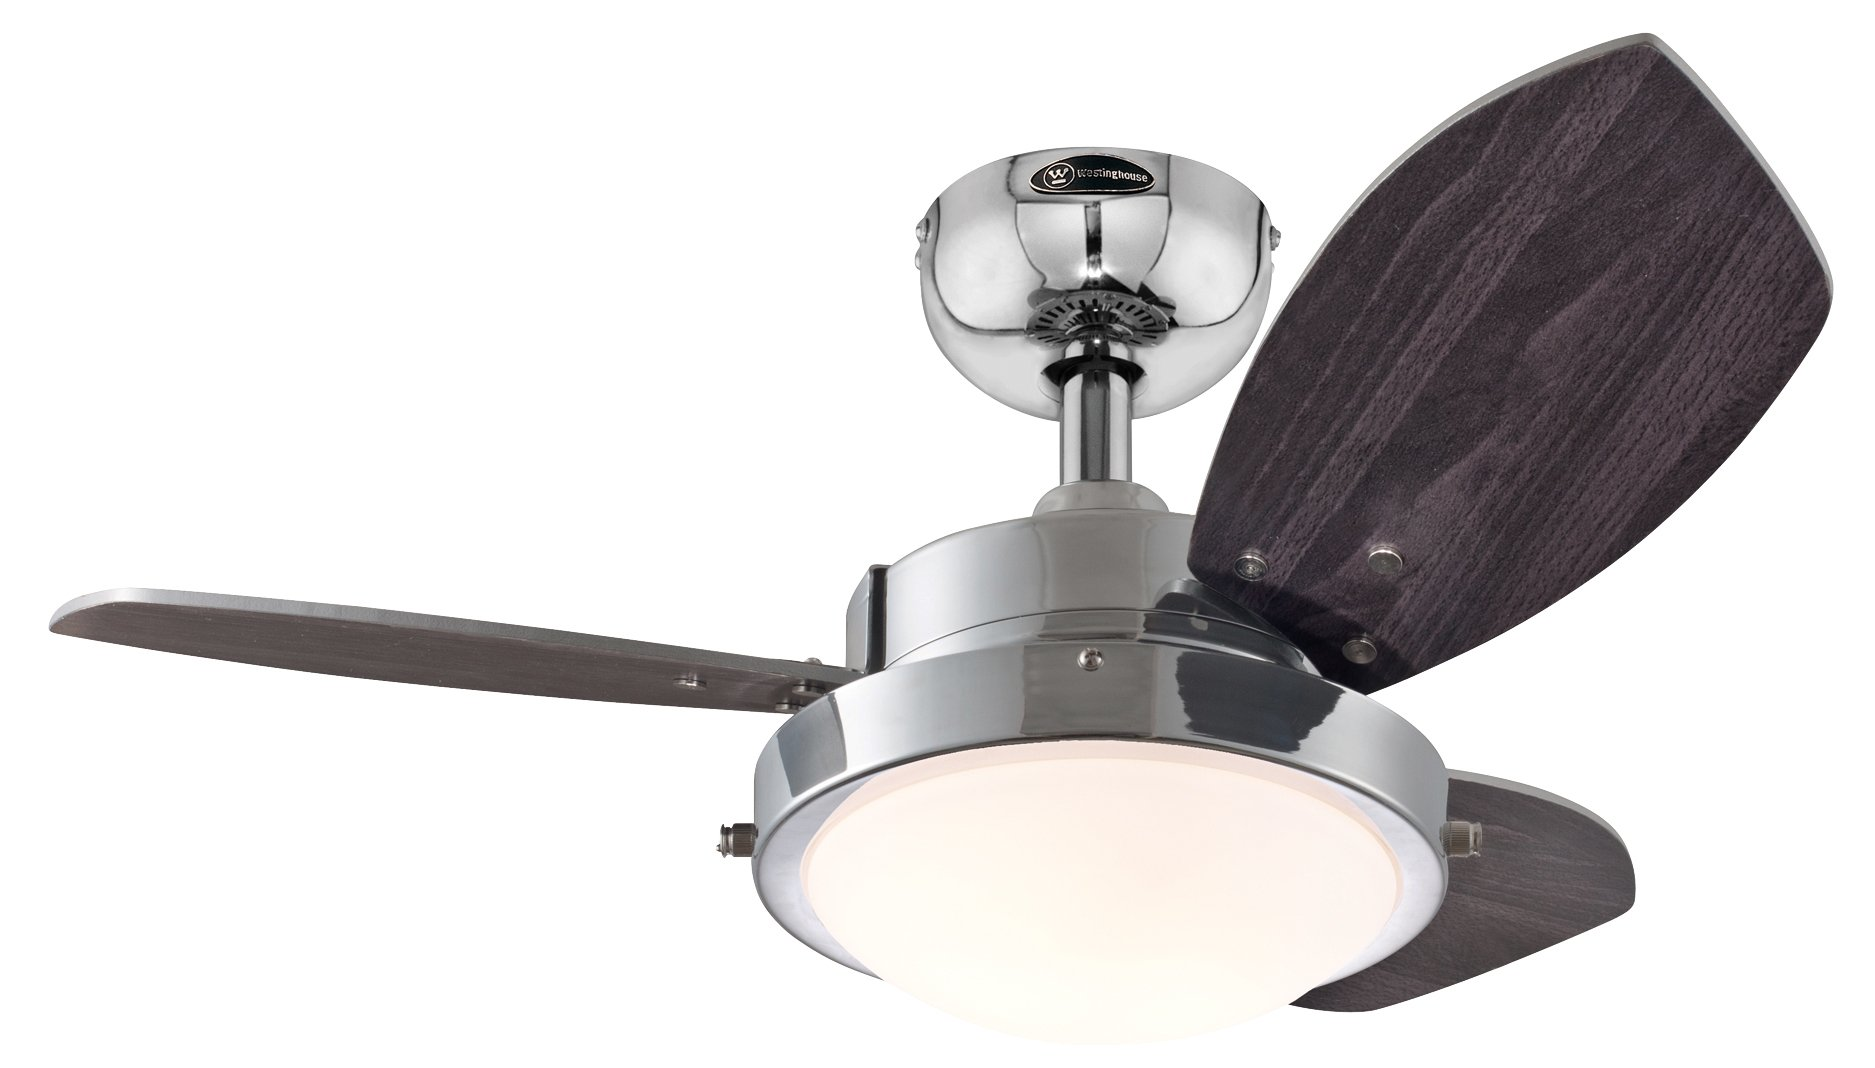 Westinghouse 7876300 Wengue Chrome 30'' Ceiling Fan with Light by Westinghouse (Image #1)